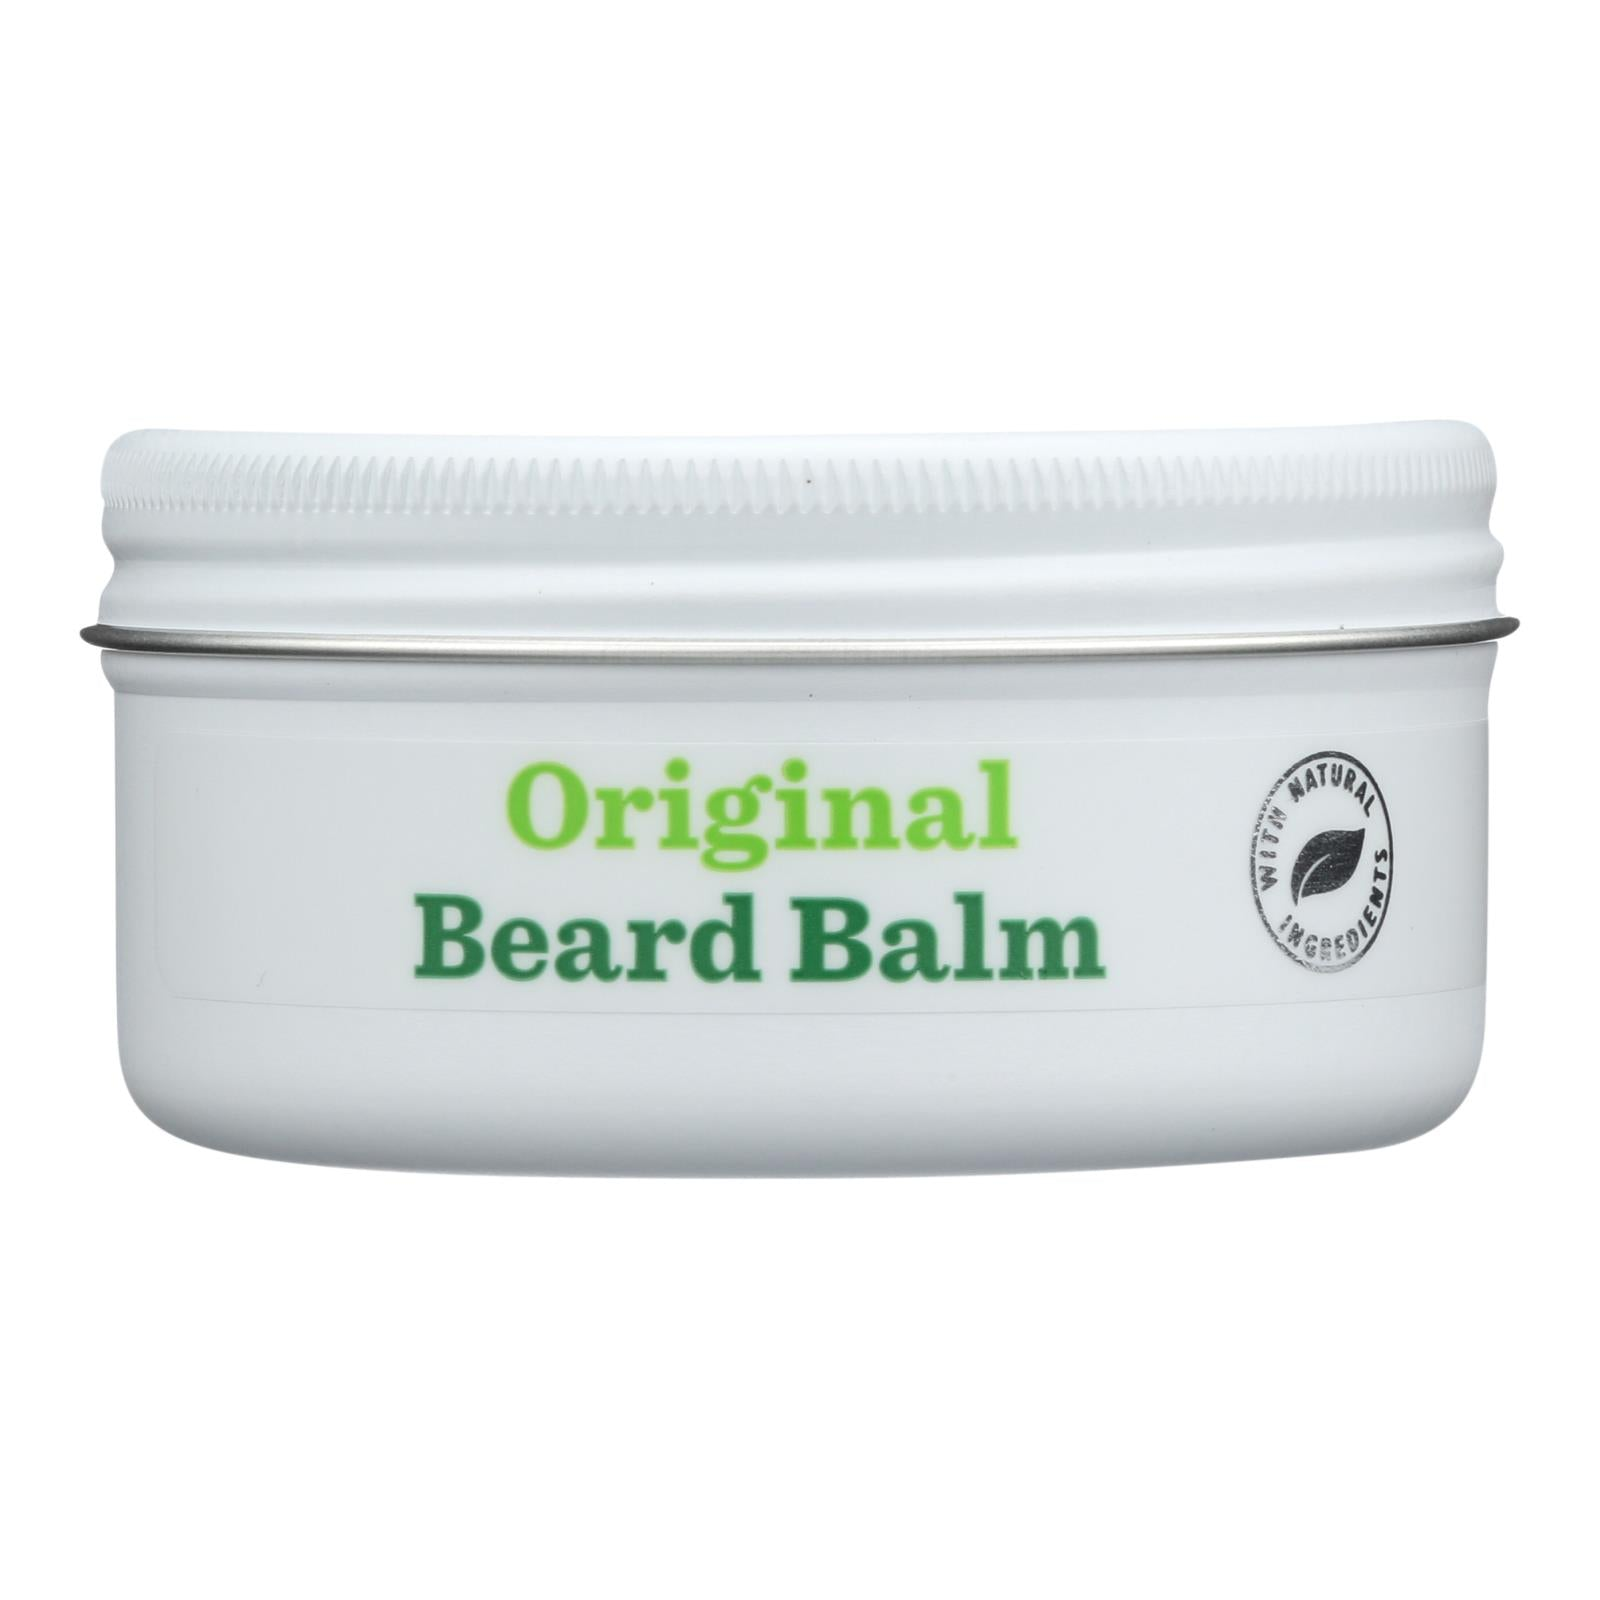 75ml Bulldog Original Beard Balm Natural Skincare